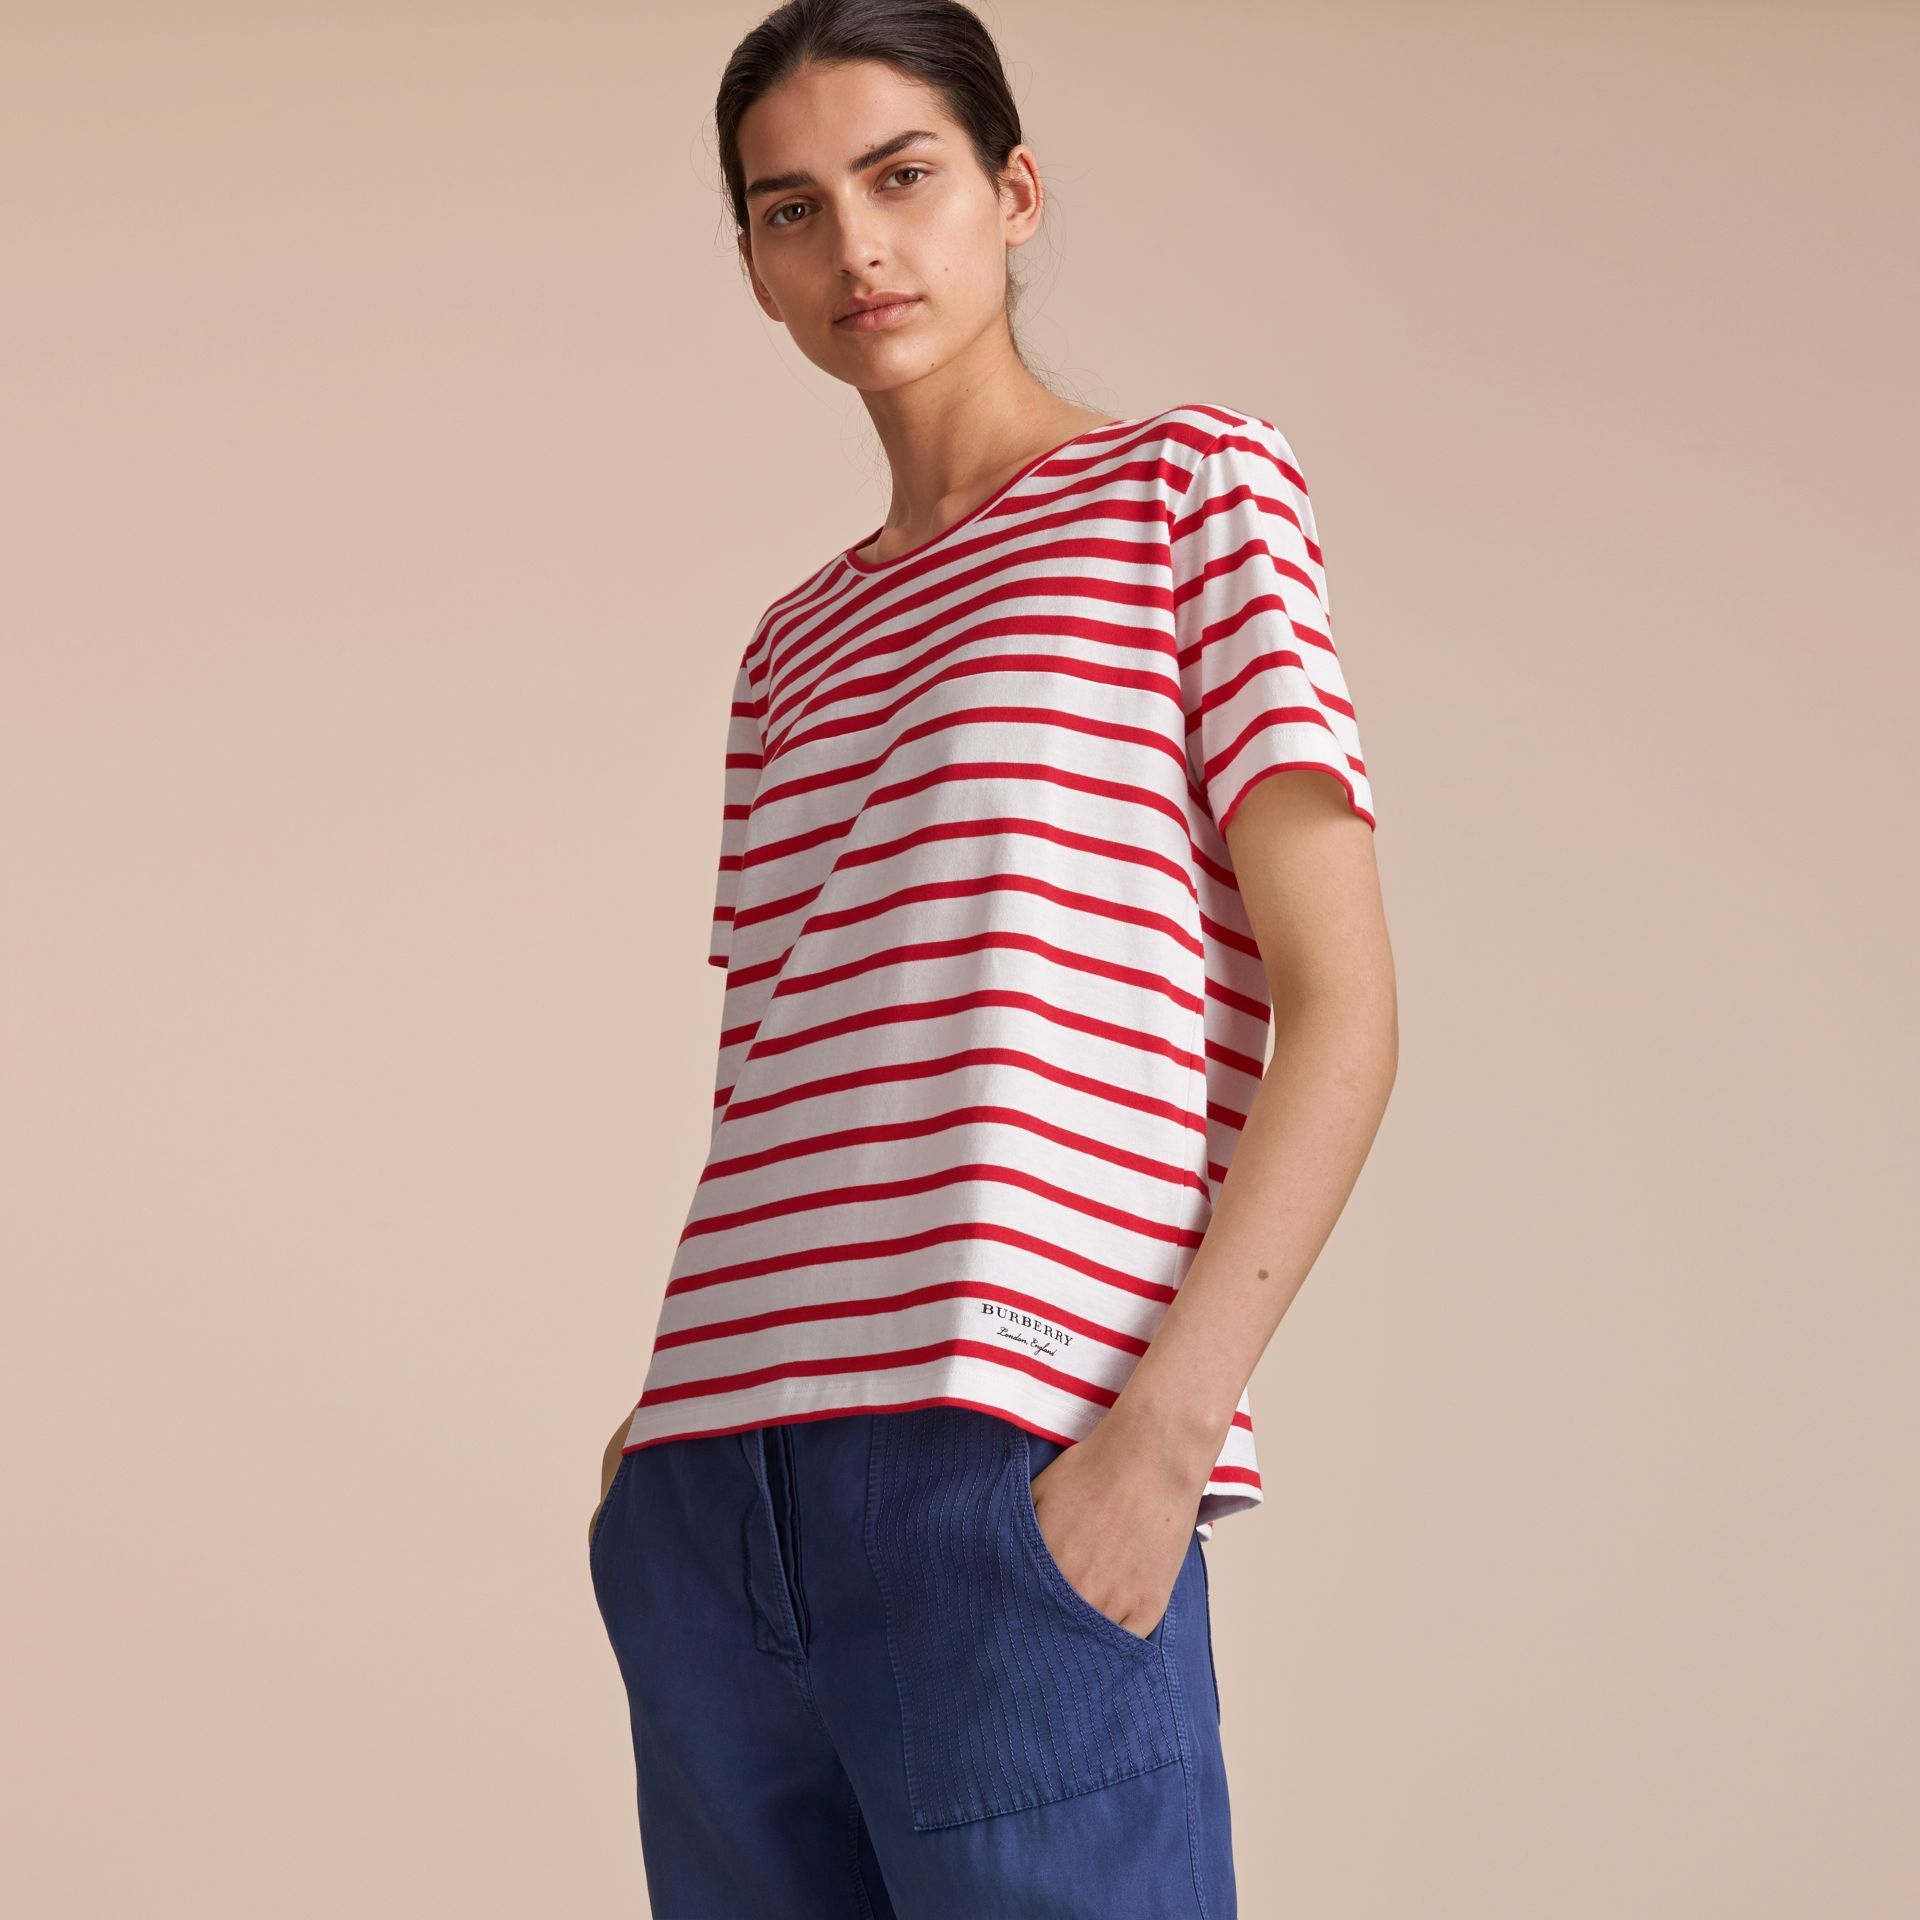 Breton Stripe Cotton T-shirt in Military Red/white - Women | Burberry - gallery image 5